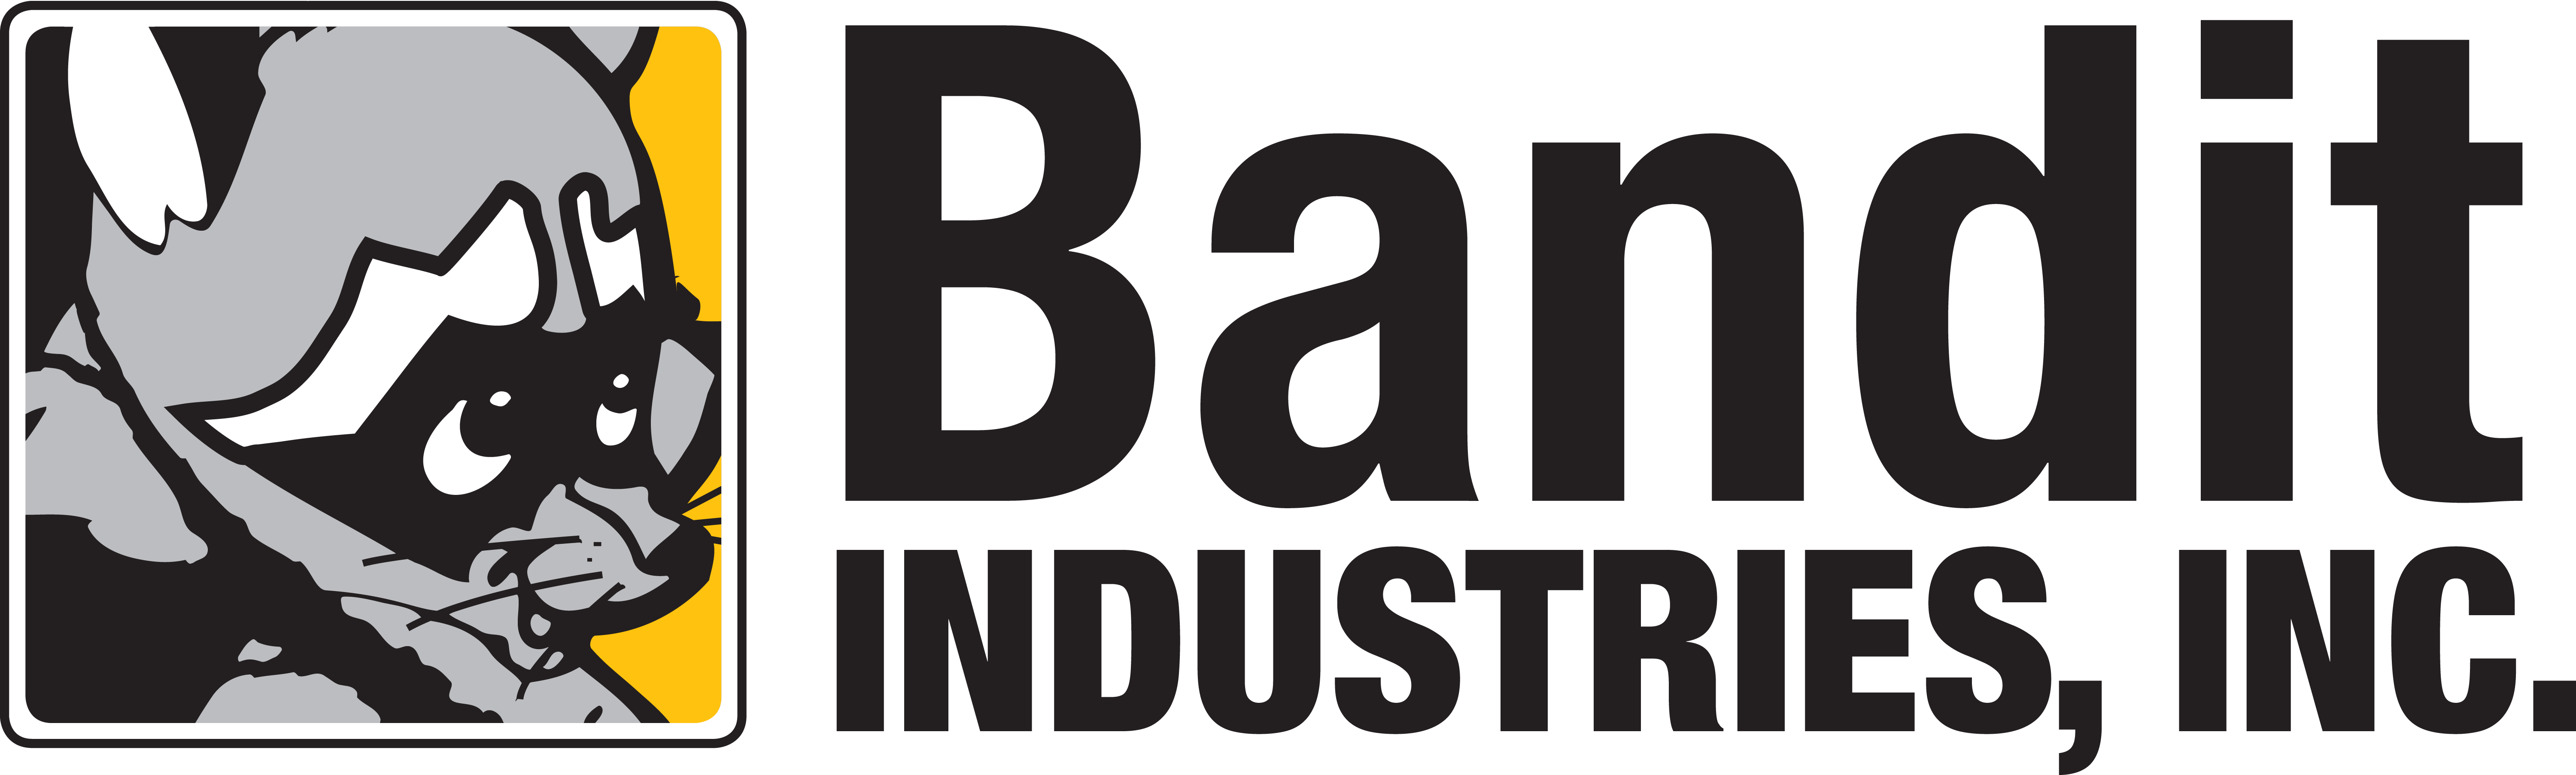 Bandit Industries